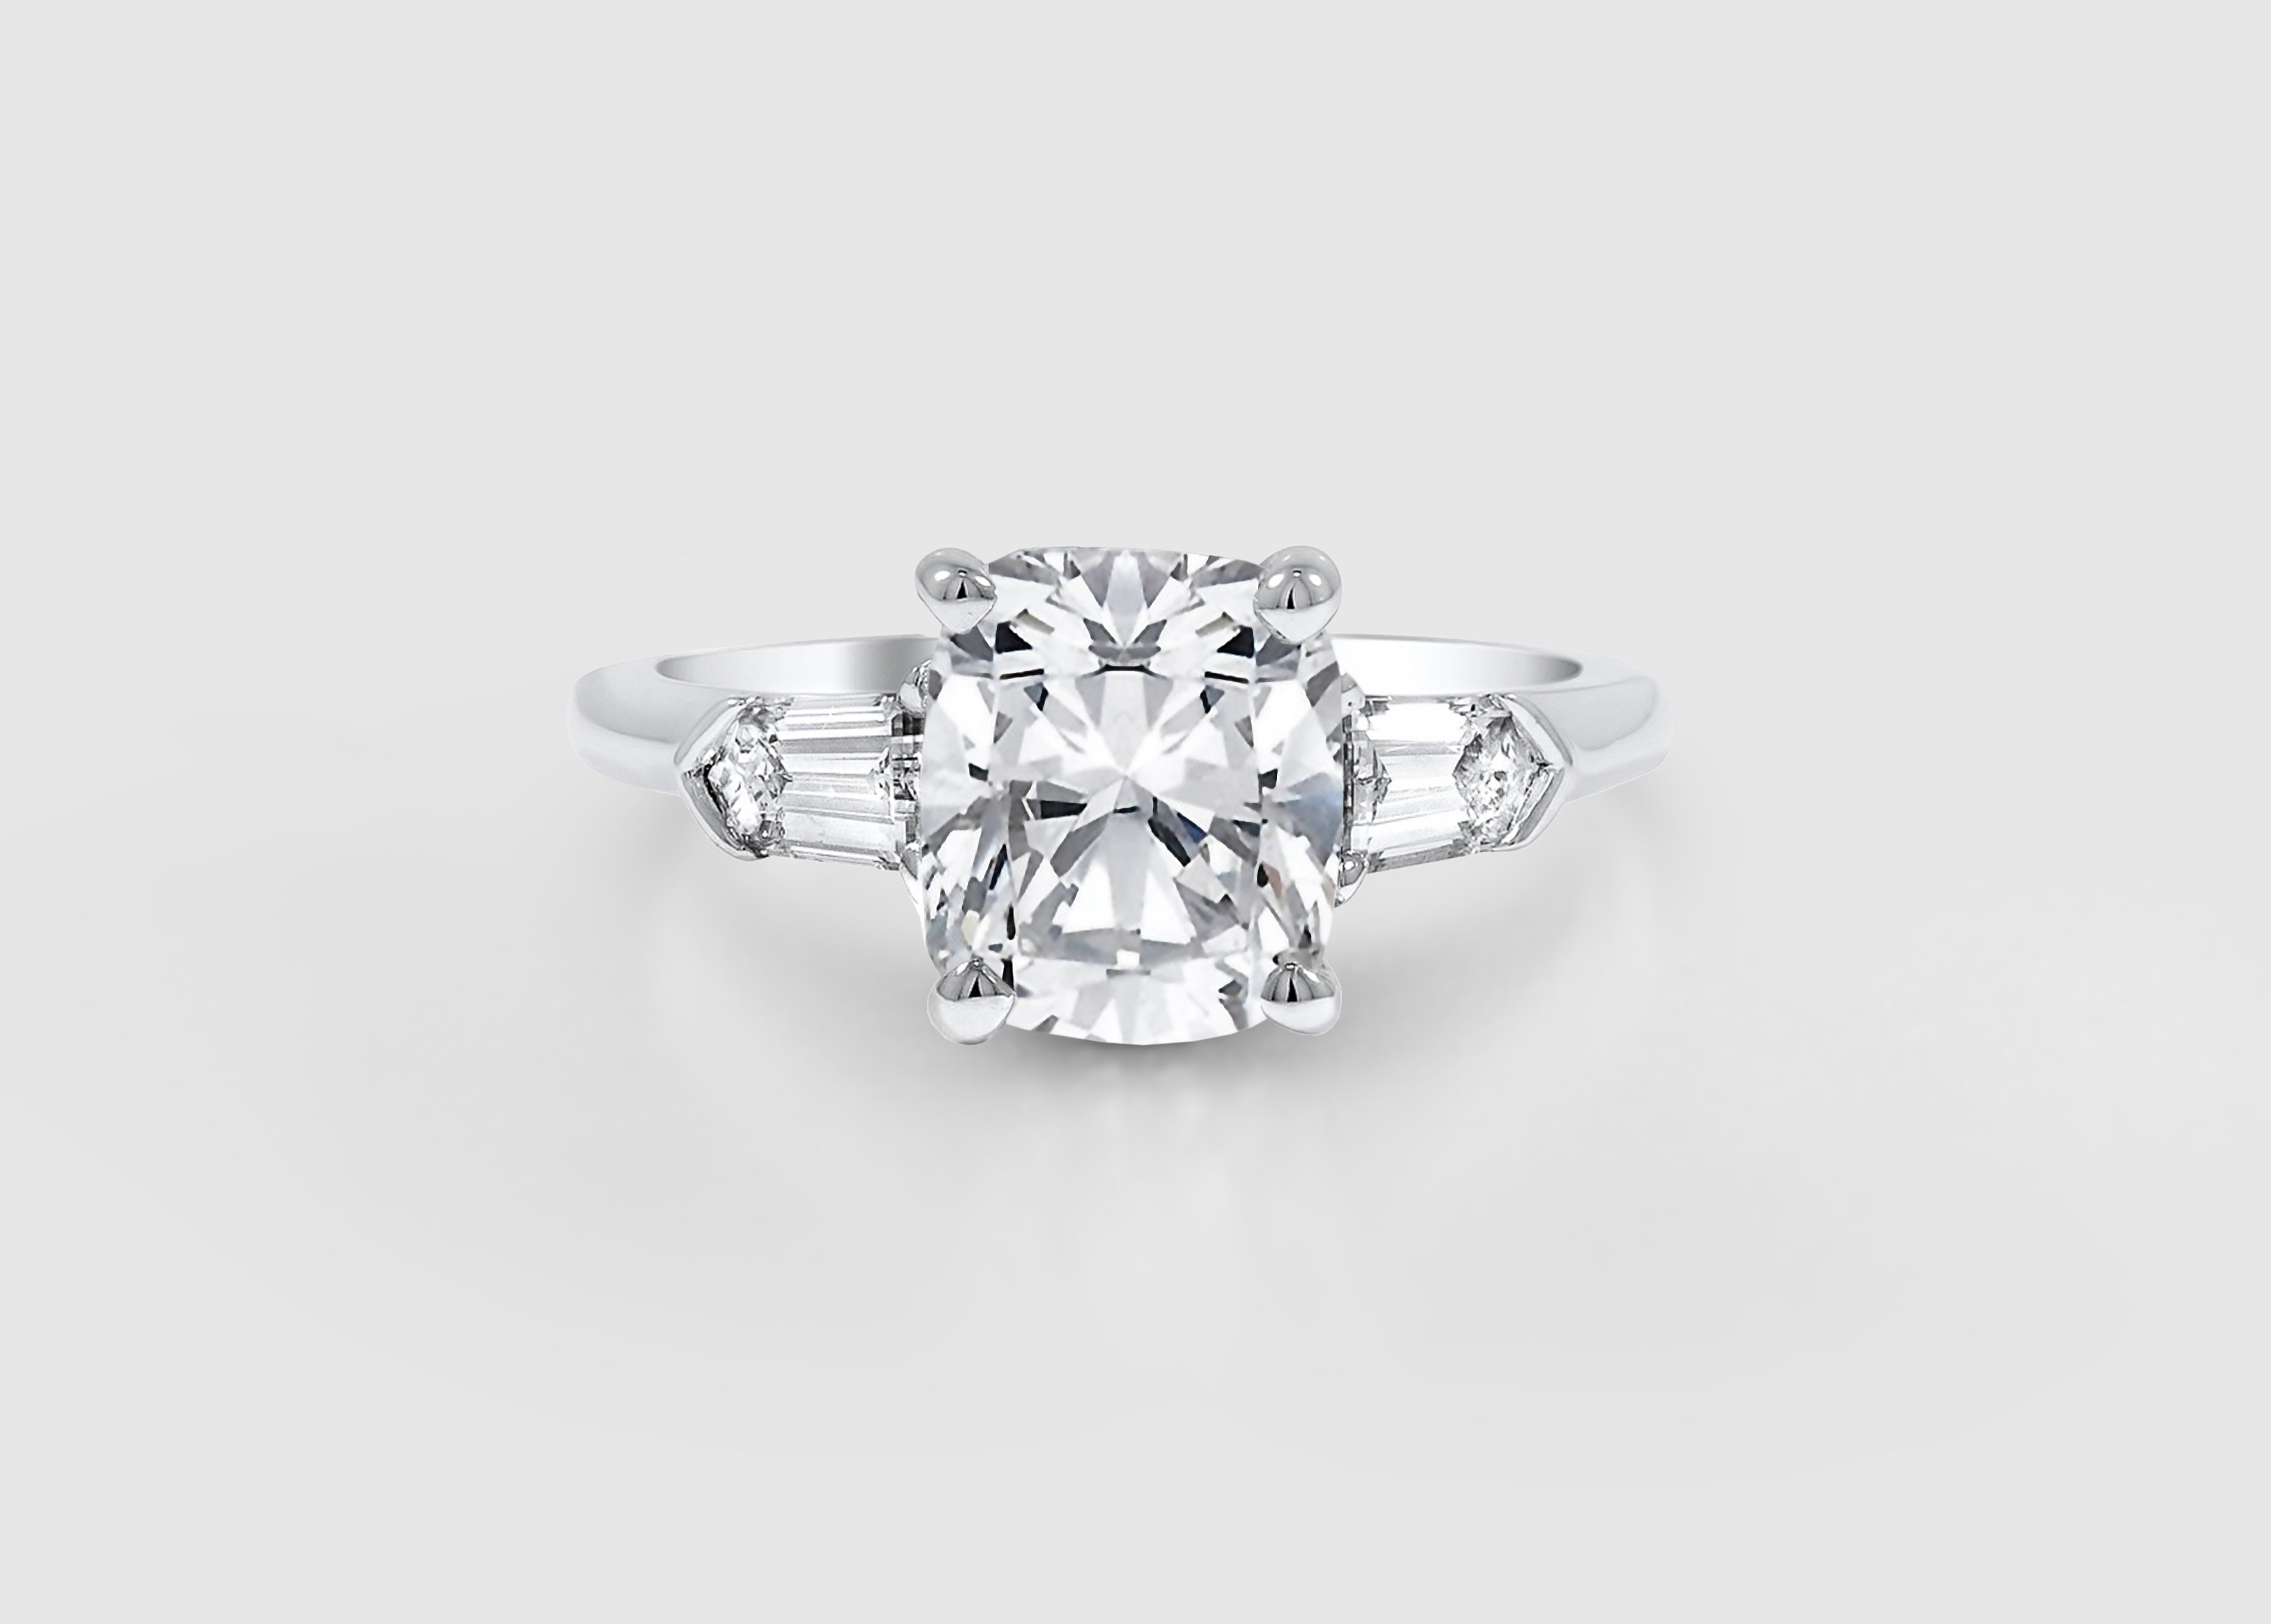 Engagement ring trends of the past present and future brilliant engagement ring trends of the past present and future brilliant earth buycottarizona Choice Image